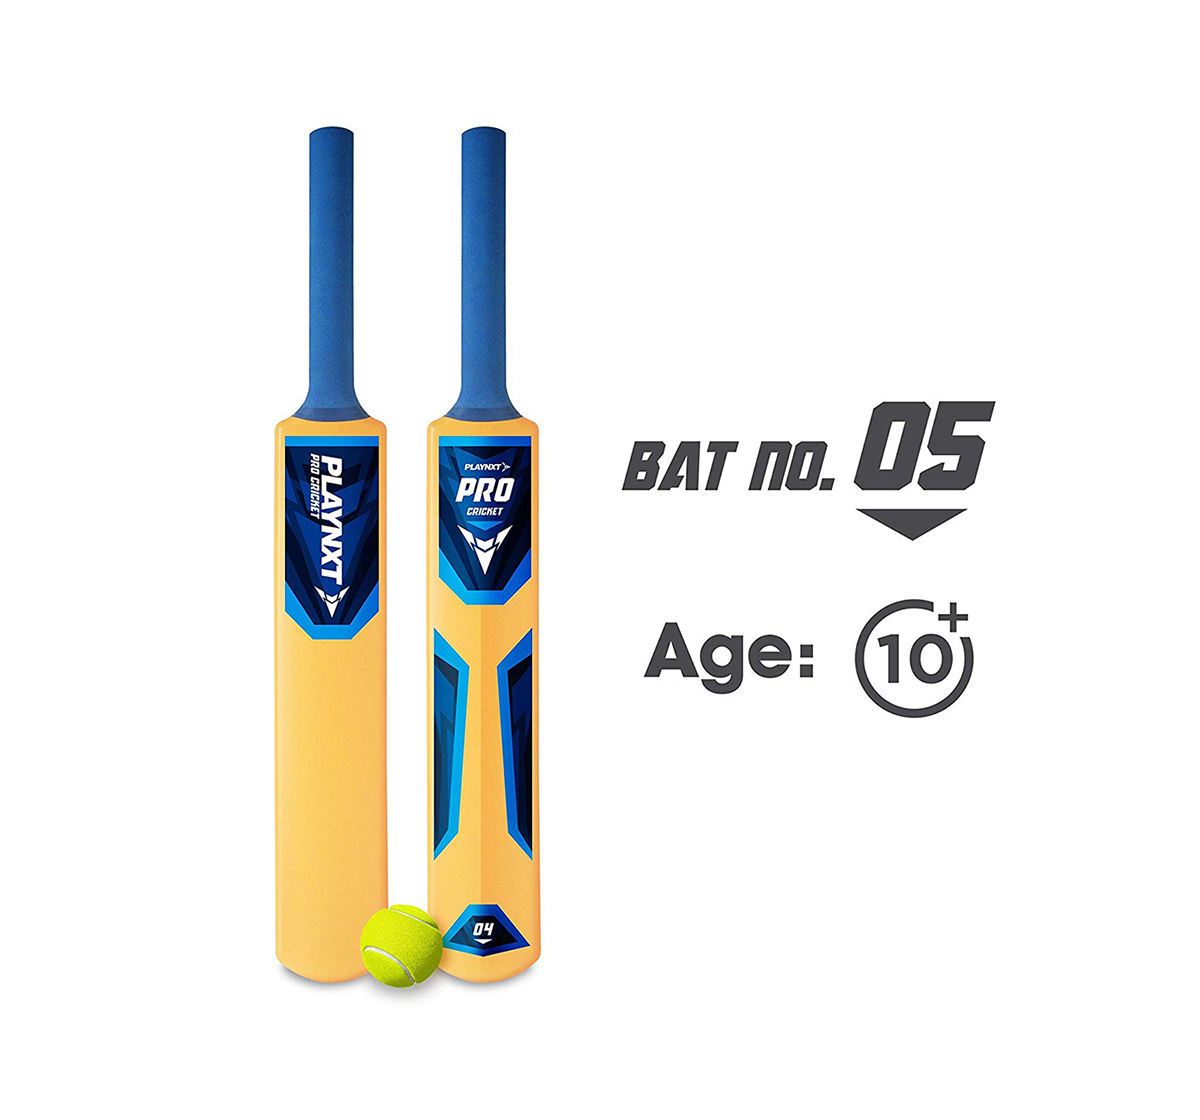 Playnxt | Playnxt Pro Cricket Bat No. 5 For Kids & Adults, 9Y+ (Ivory Yellow )